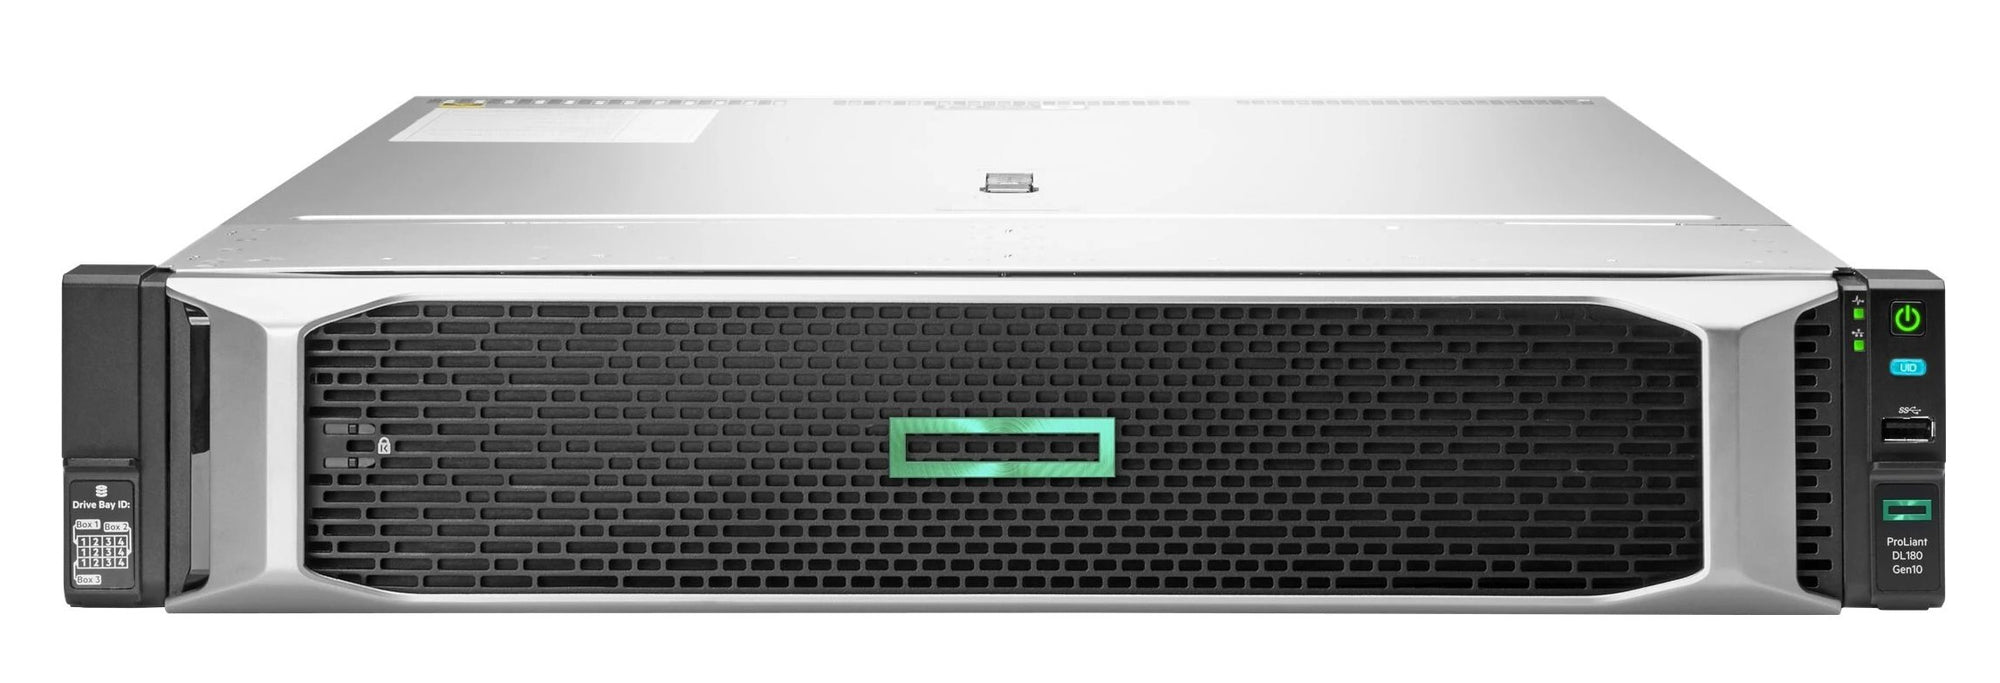 HPE ProLiant DL180 Gen10 CTO Server